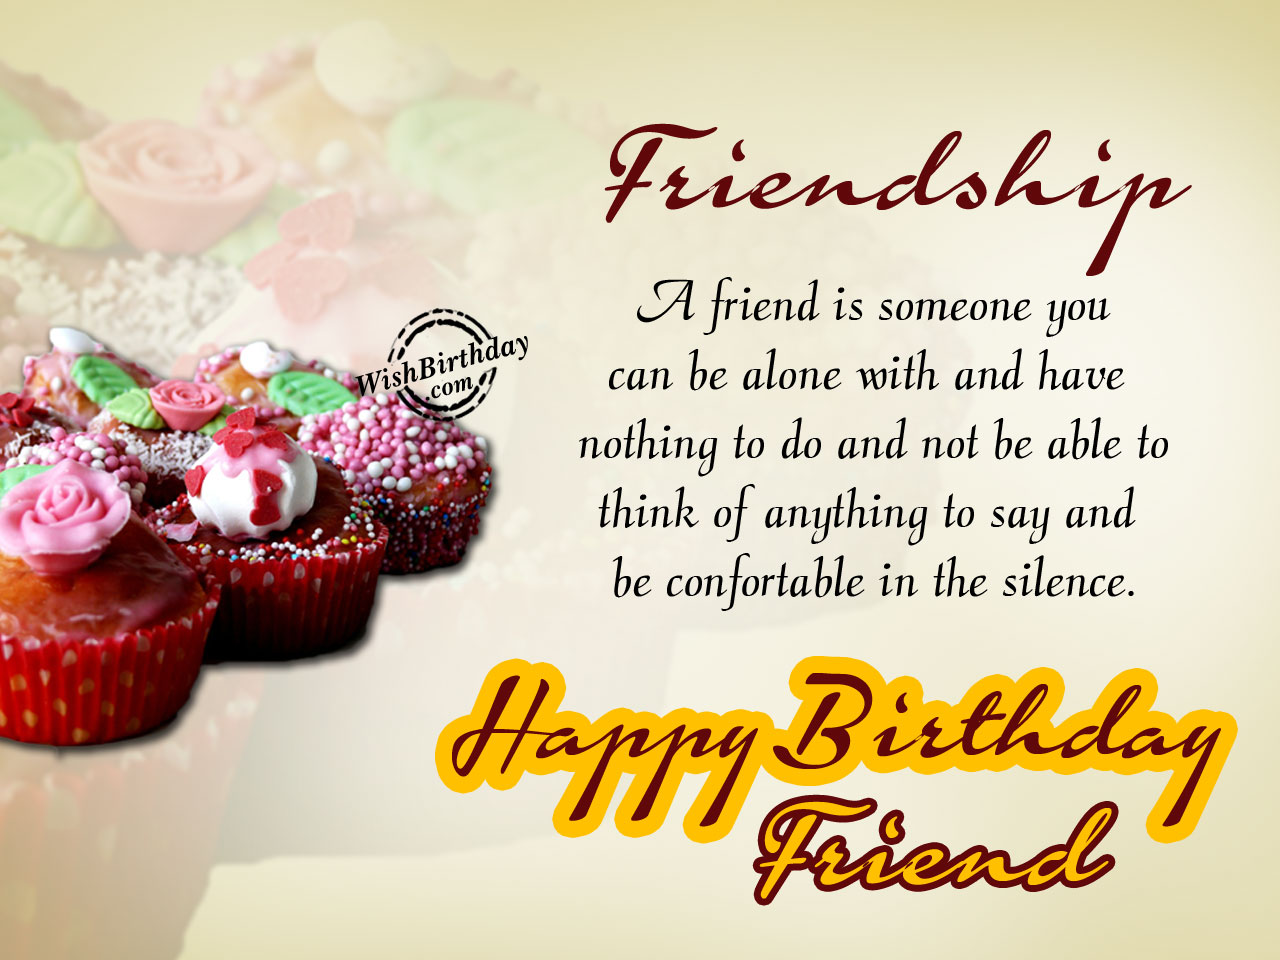 Birthday Wishes For A Friend Images ~ Birthday wishes for friend images pictures